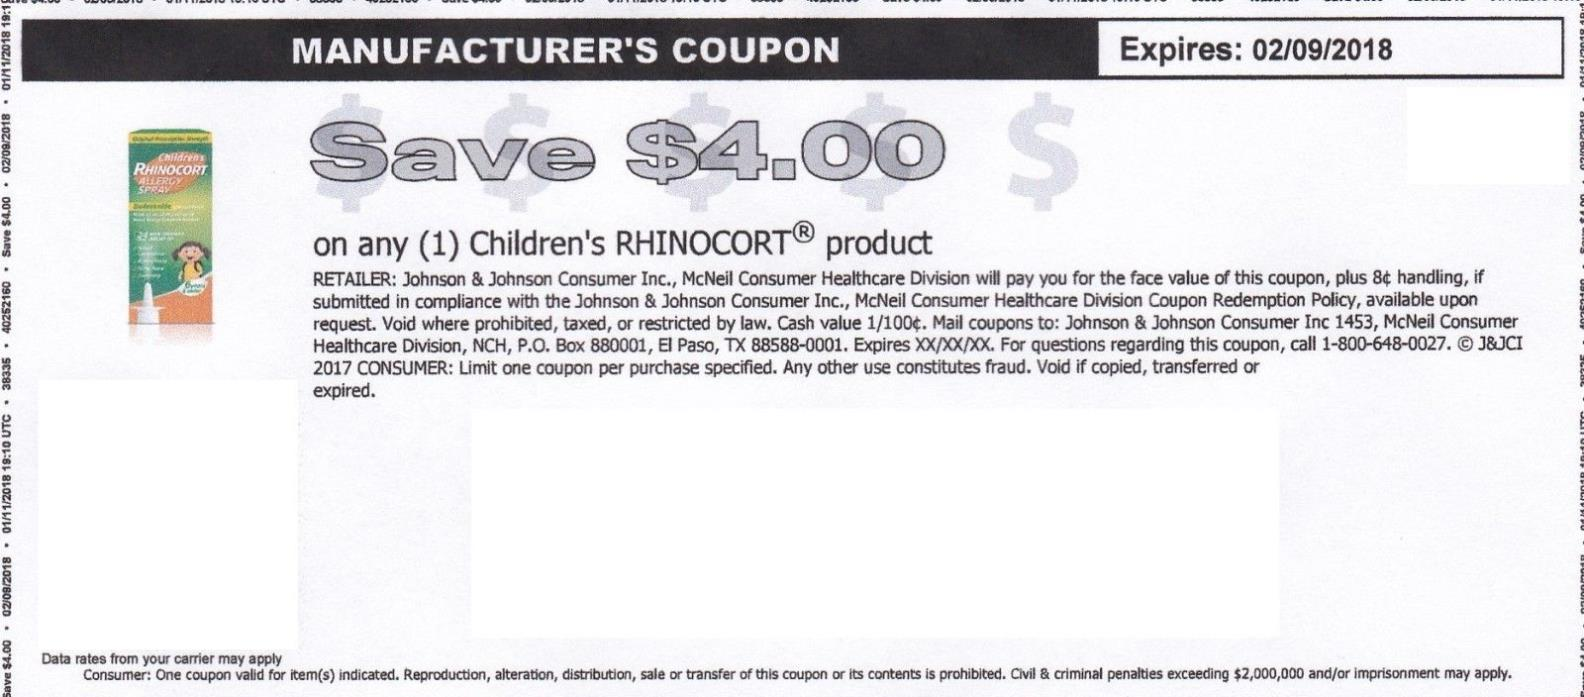 Coupon $4 Chindren's Rhinocort